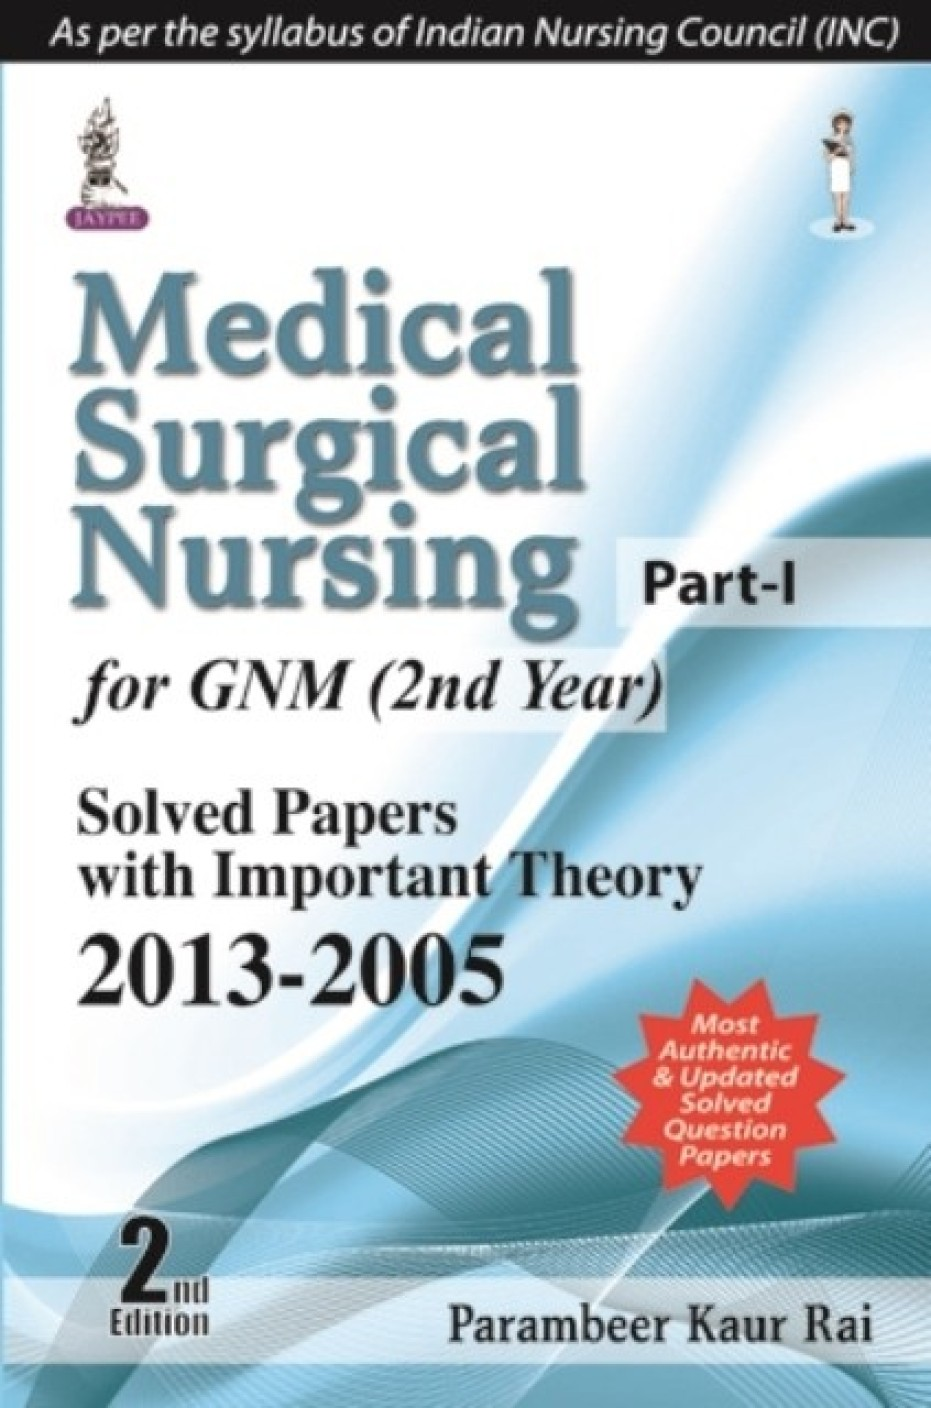 the importance of nursing theory essay Nursing theories essays (examples) filter results by:  nursing theory description of importance of nursing theory theories are composed of definitions, concepts, propositions, and models based on assumption a theory serves as a group of related concepts guiding a professional practice.